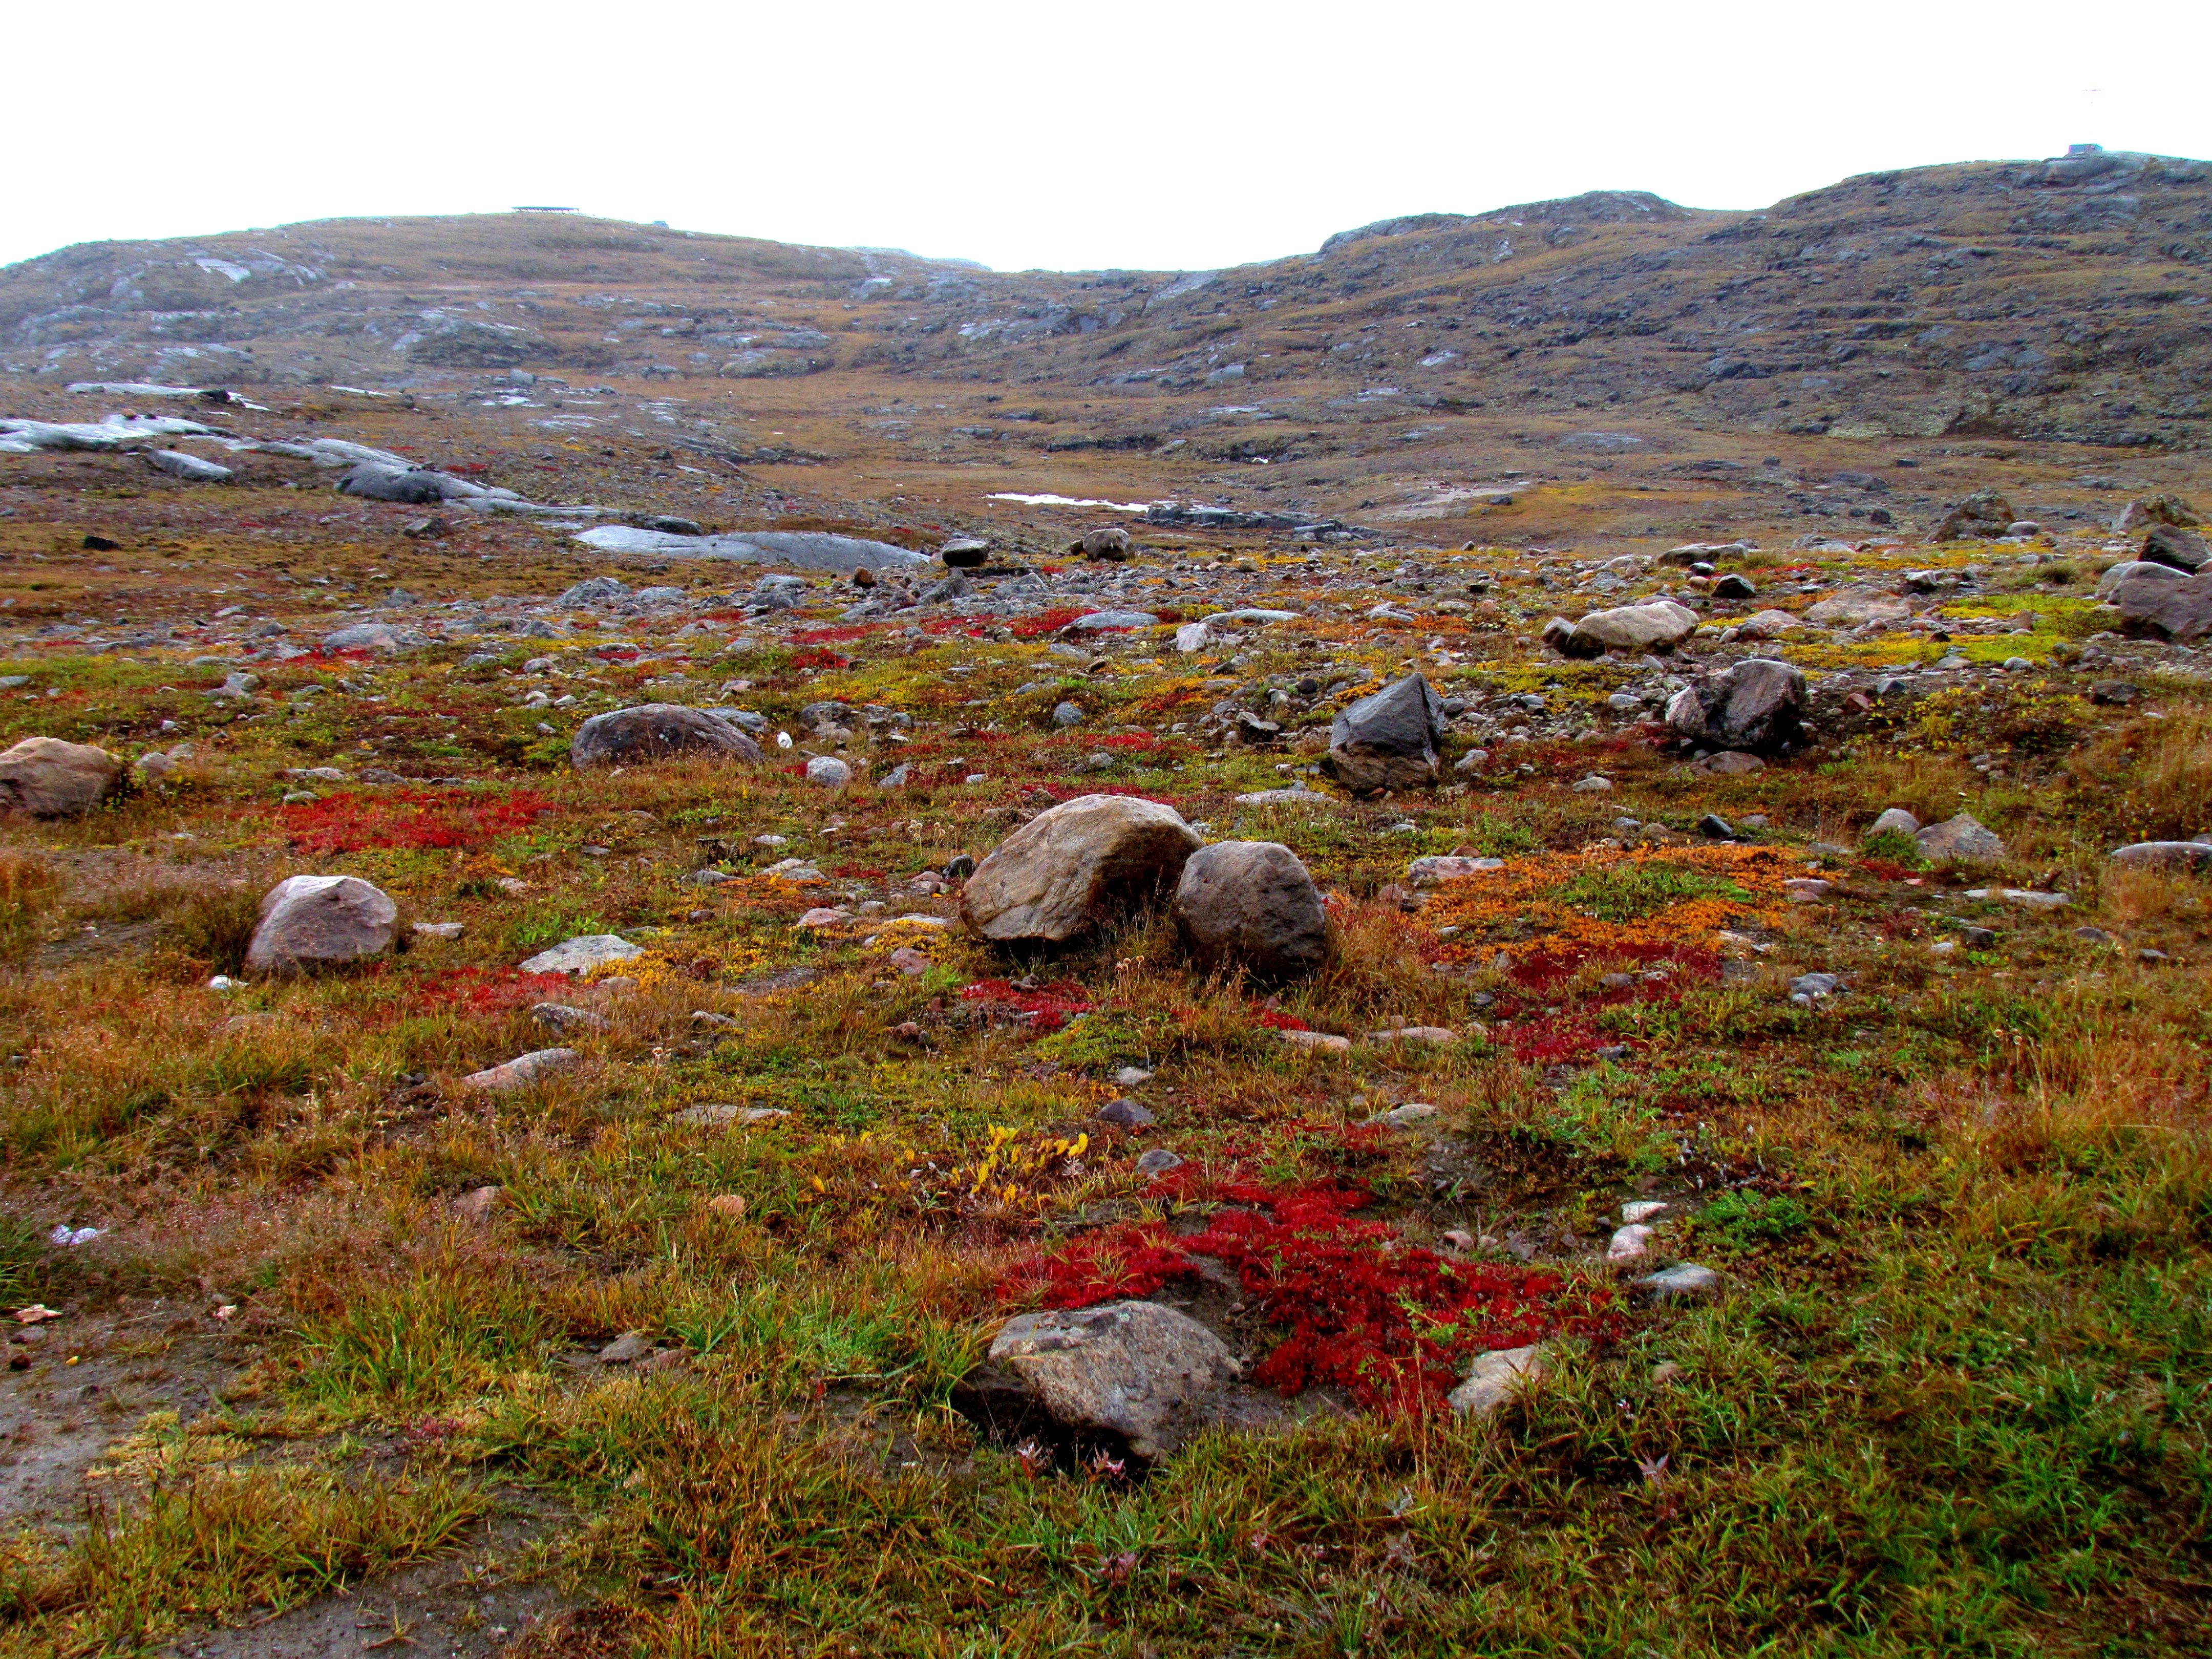 Arctic tundra covers parts of extreme northern Canada